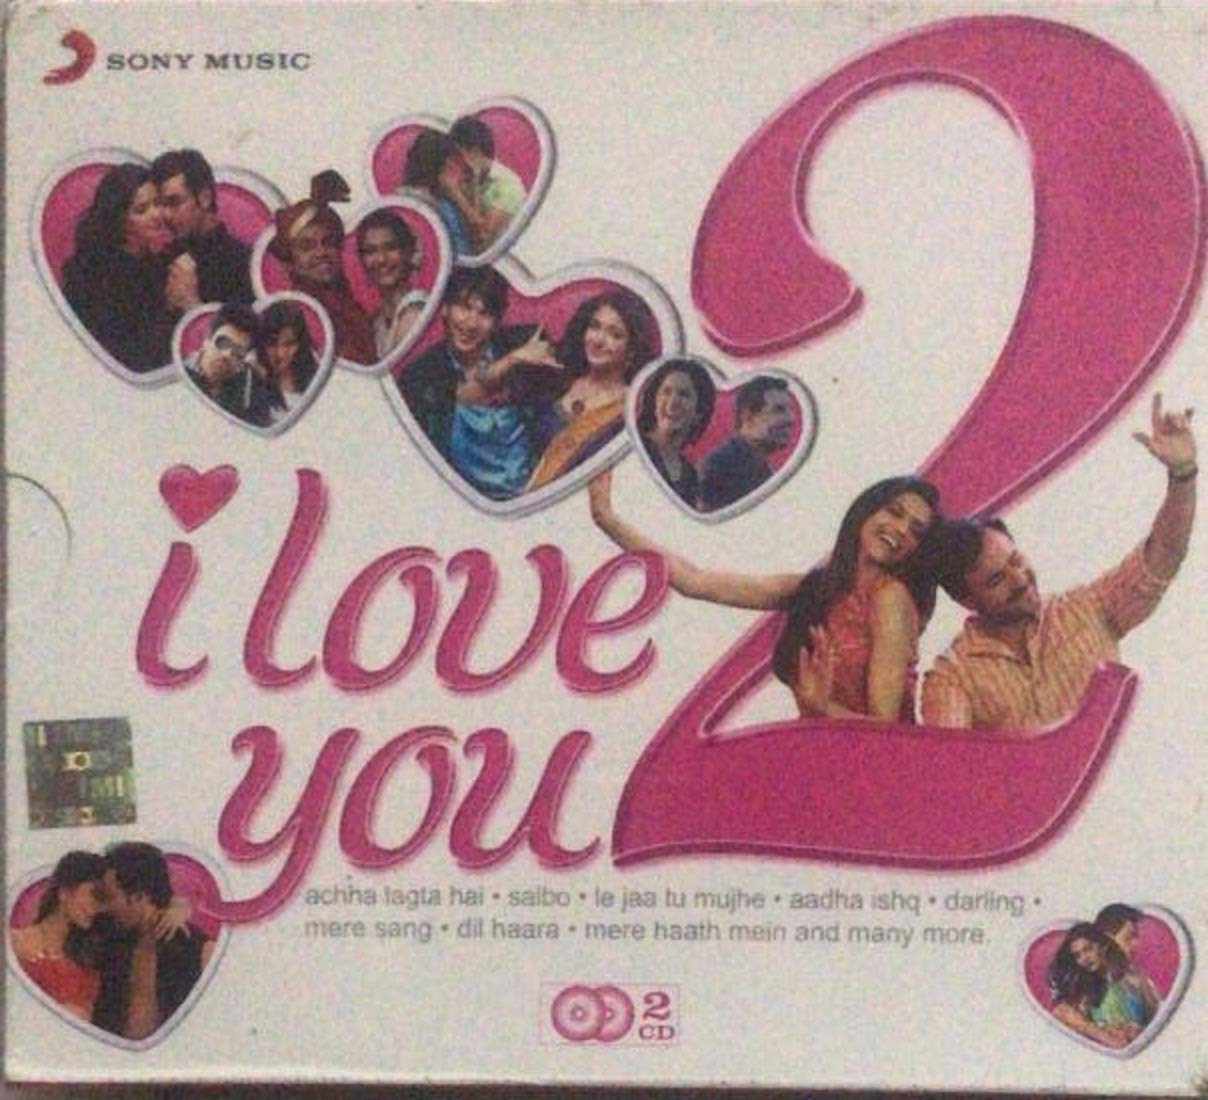 Buy I Love You 2 Hindi Songs 2 Disc Online At Low Prices In India Amazon Music Store Amazon In Over 45 million songs to suit every mood and occasion. buy i love you 2 hindi songs 2 disc